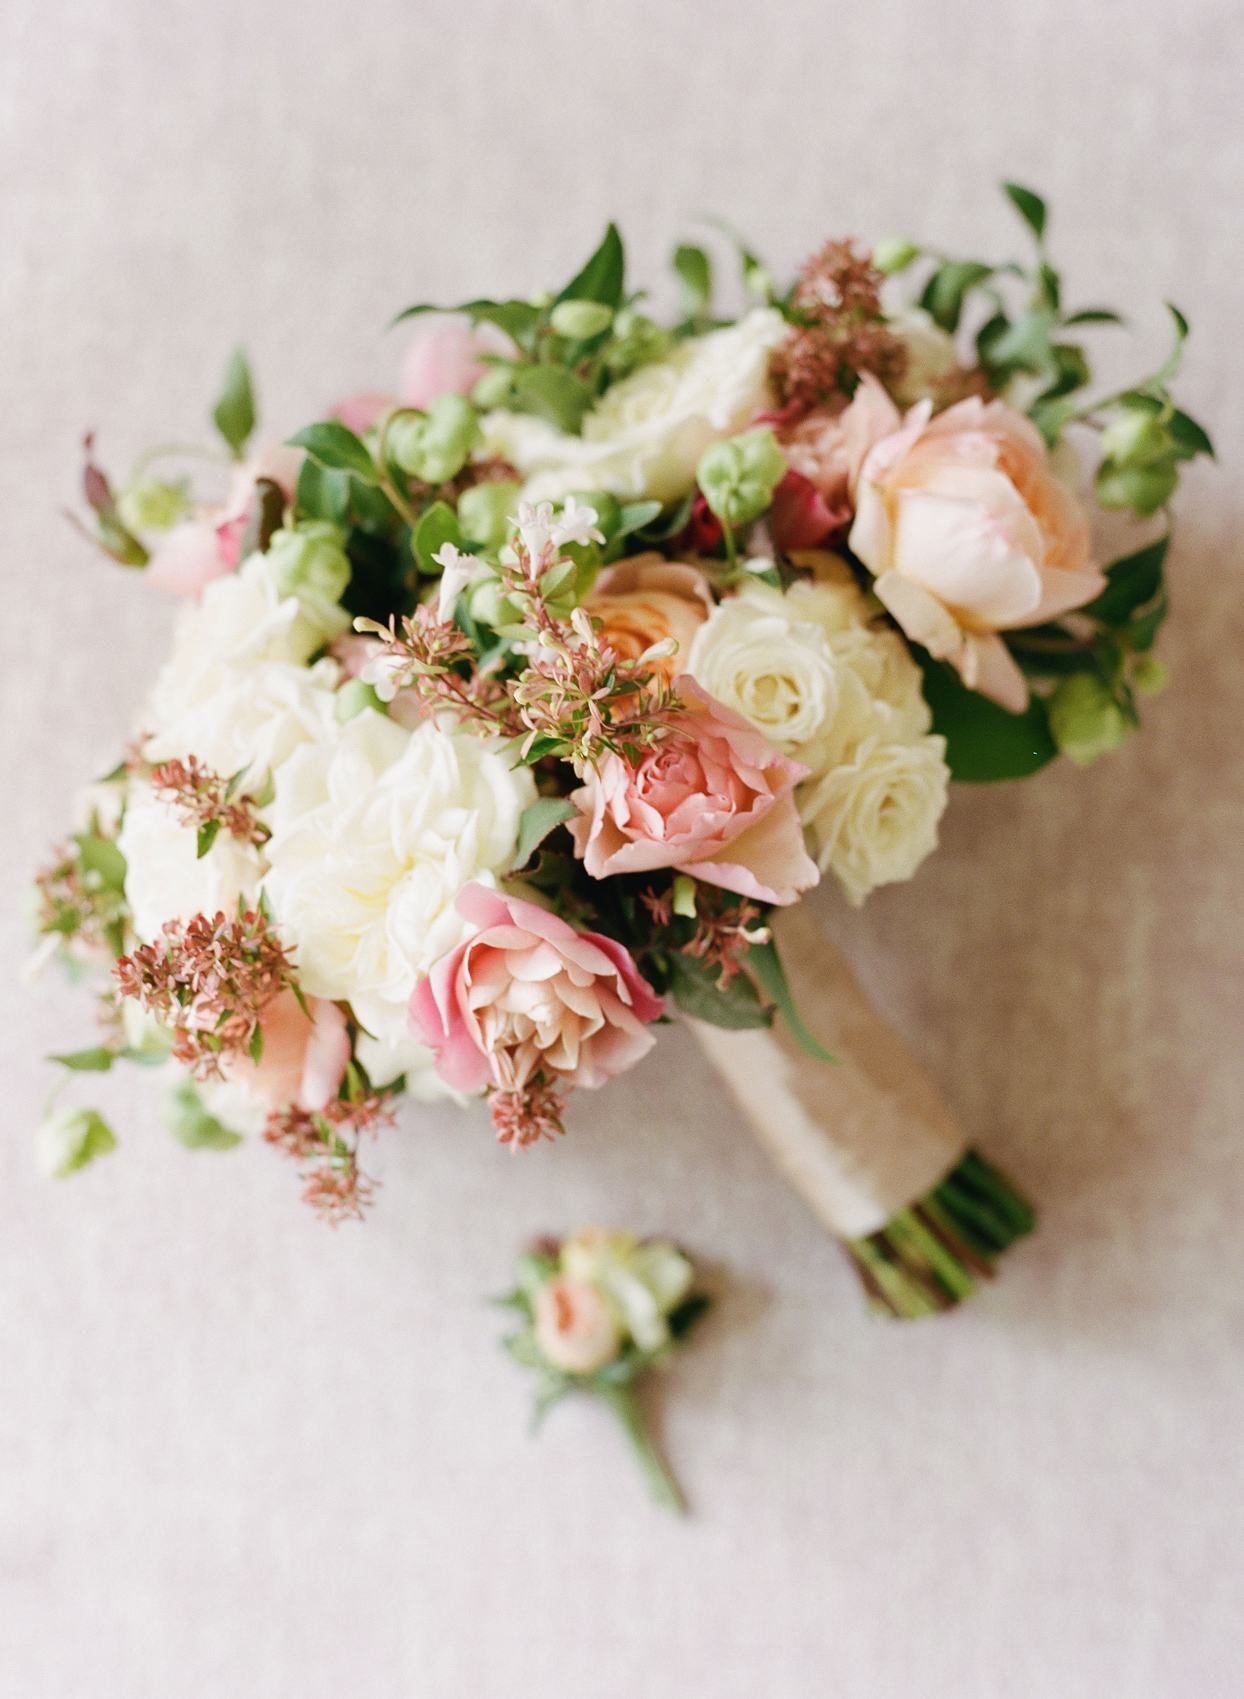 bride's bouquet with white and pink flowers